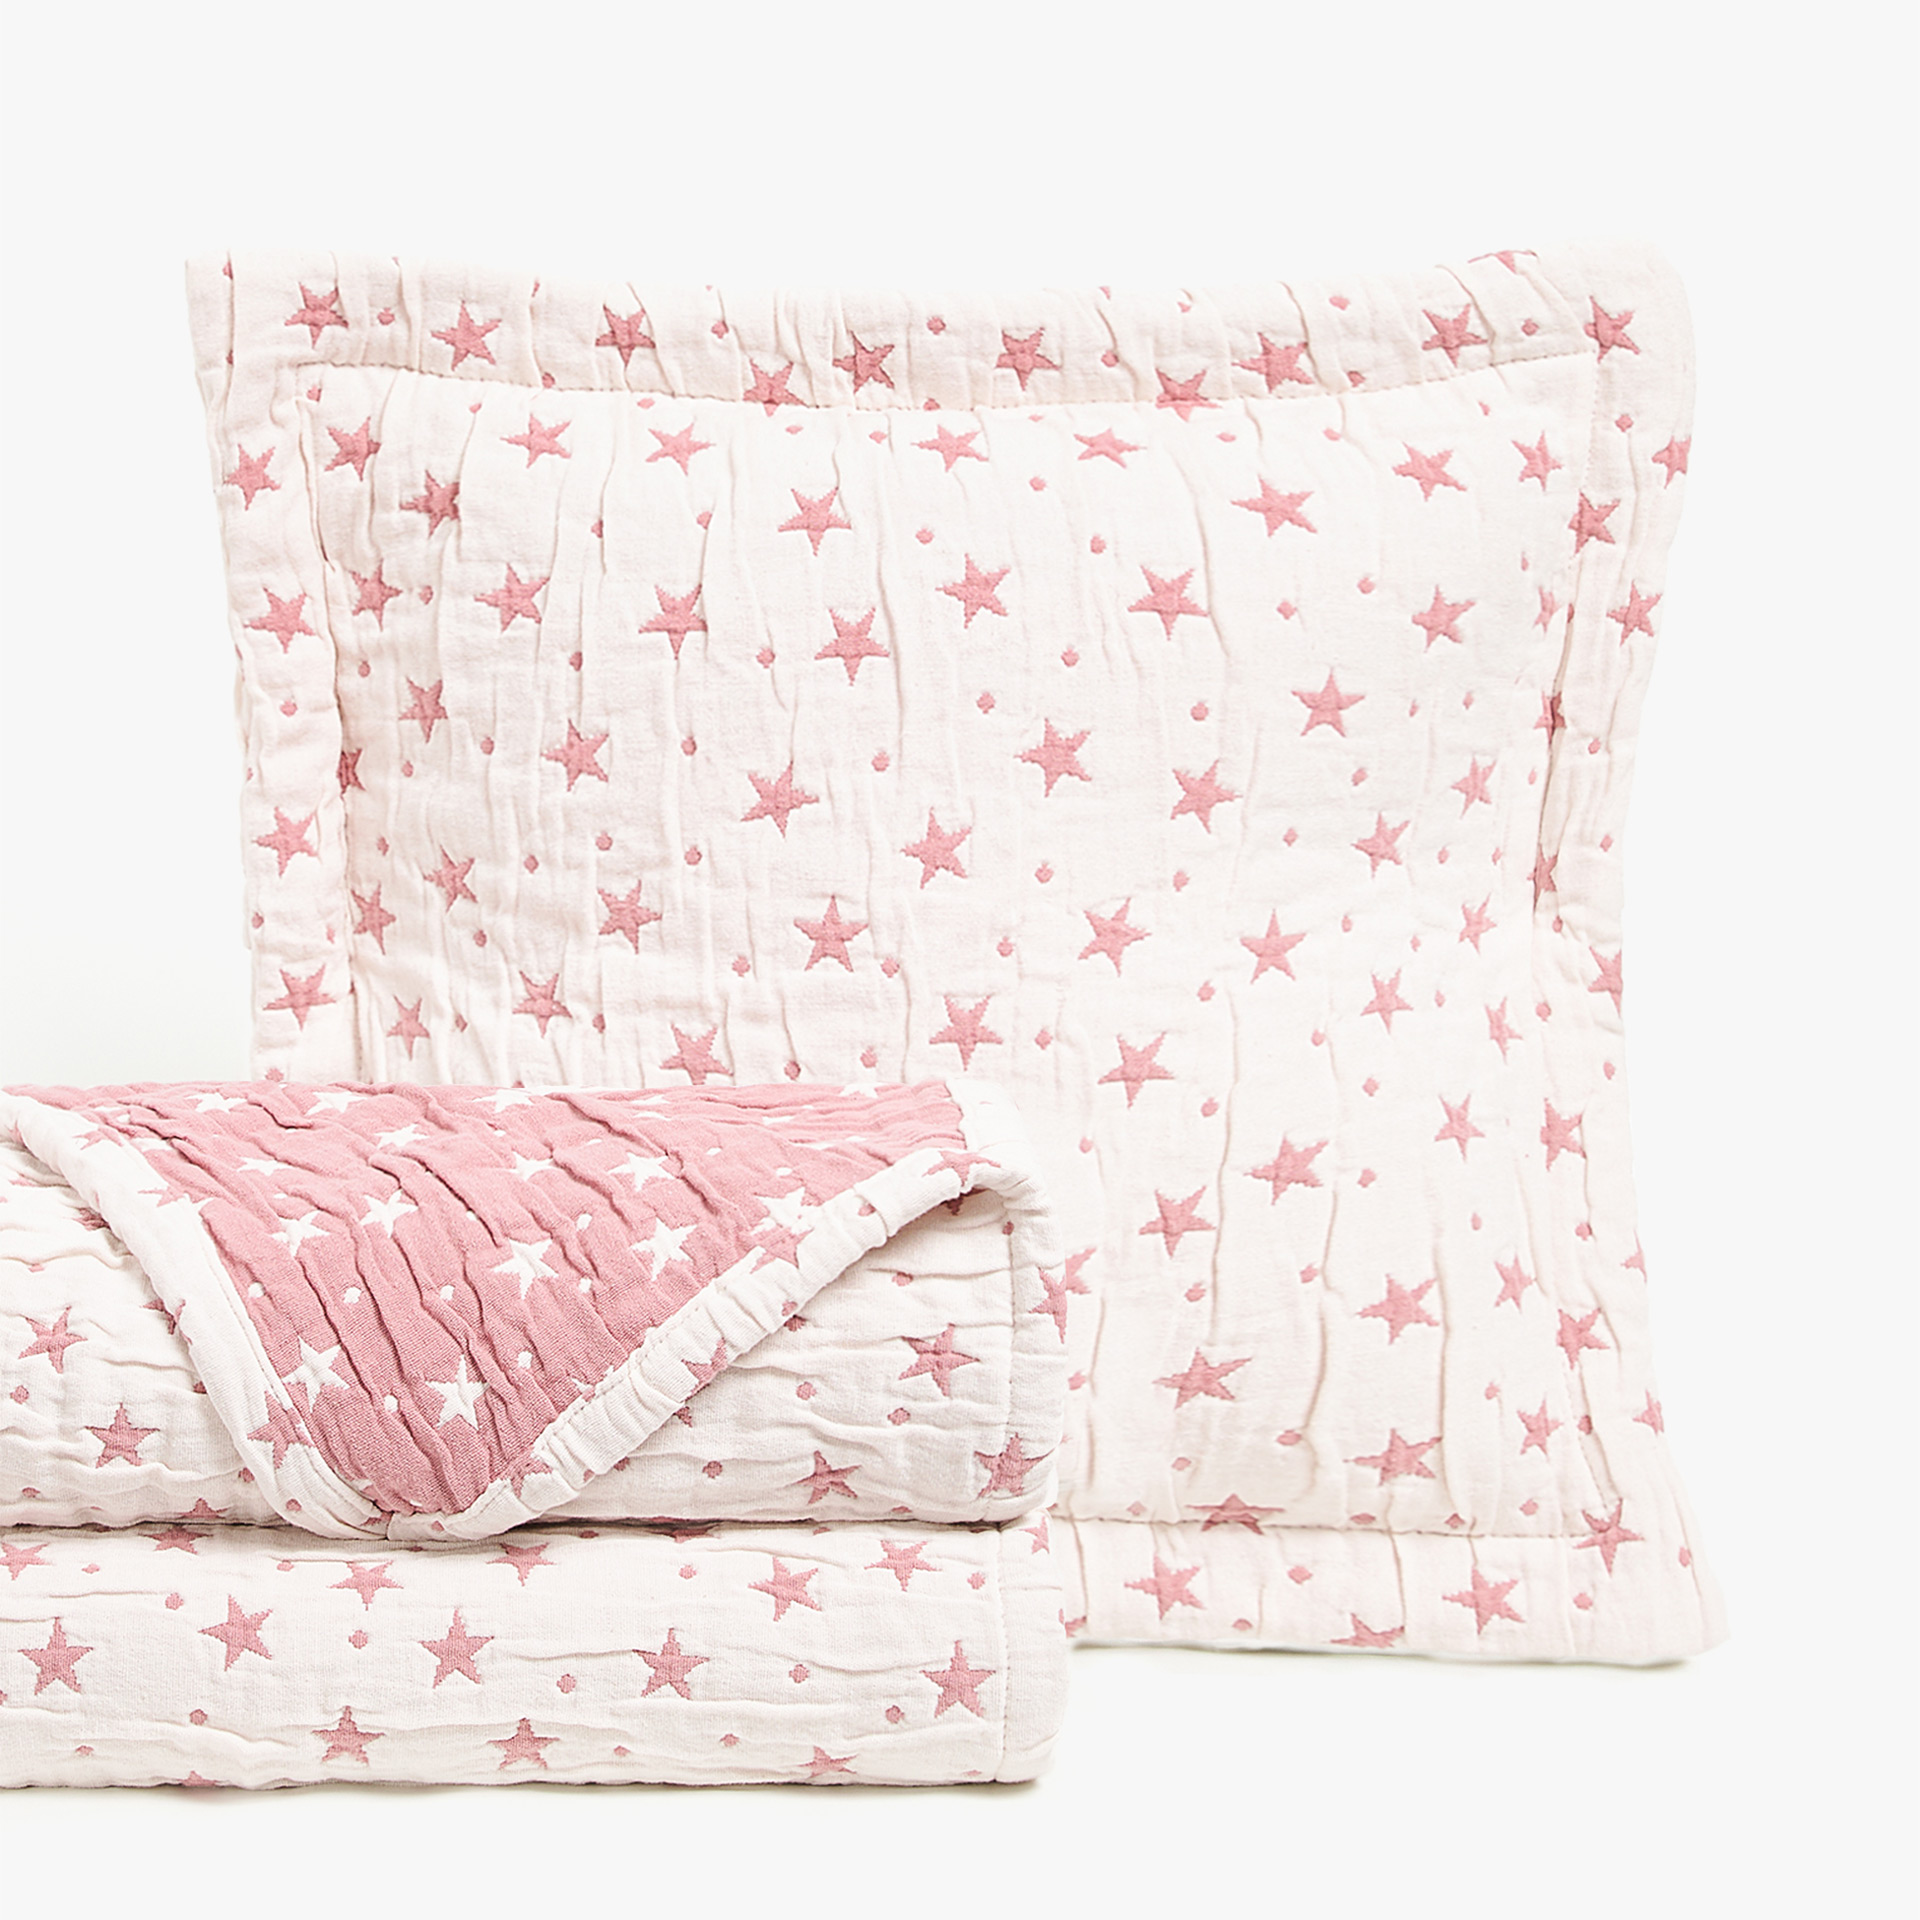 CONTRASTING STARS AND POLKA DOTS COTTON BEDSPREAD